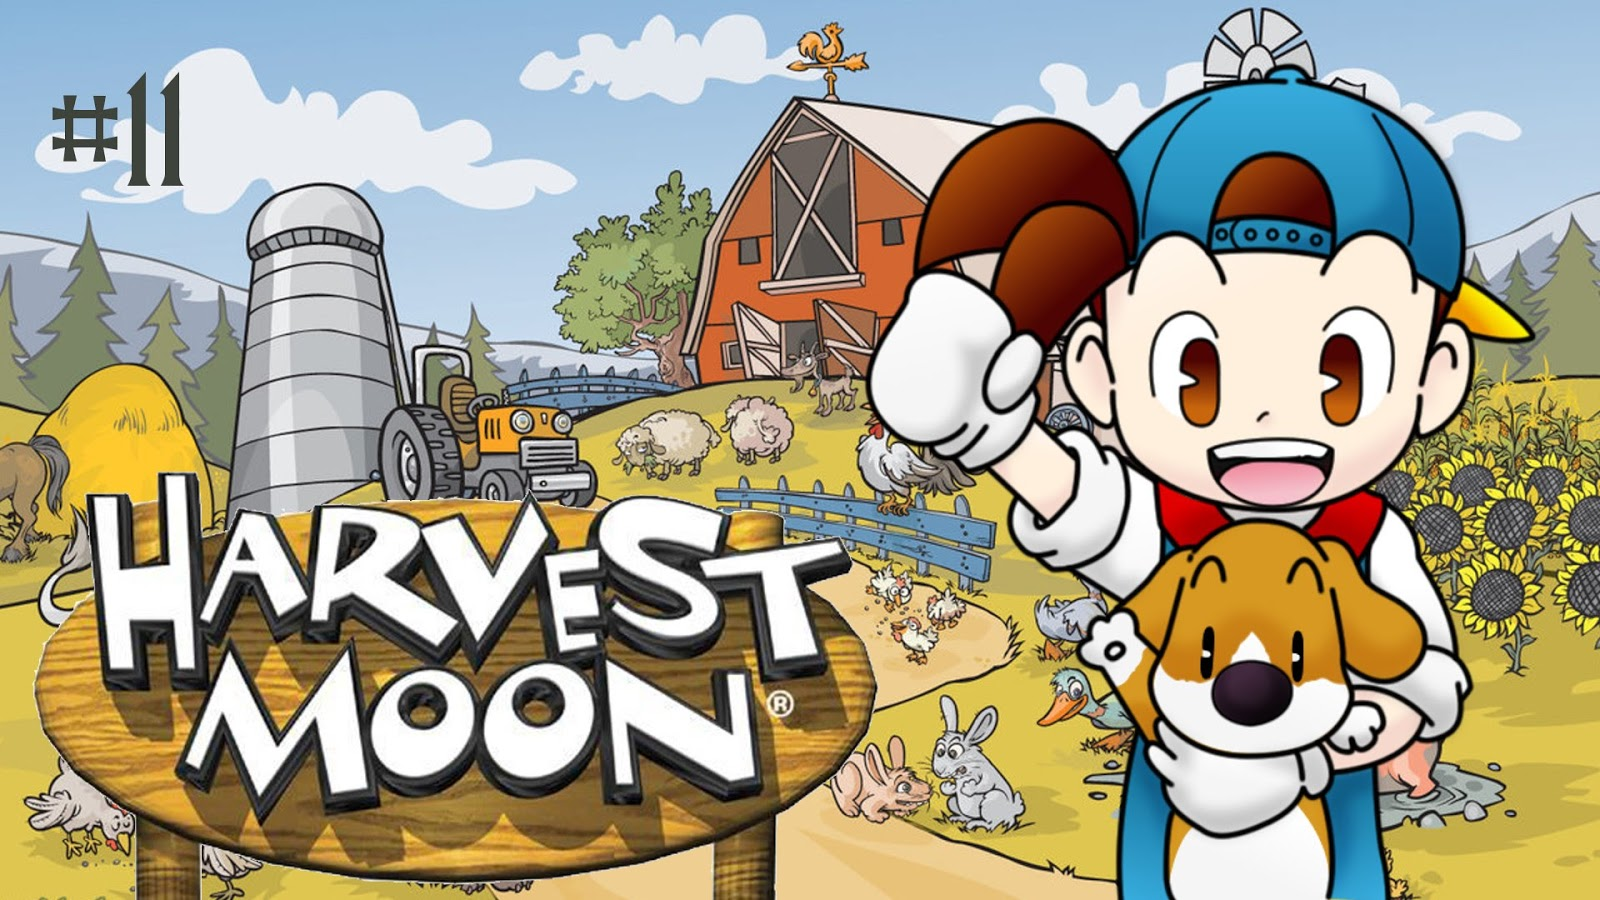 Harvest moon back to nature marriage glitch